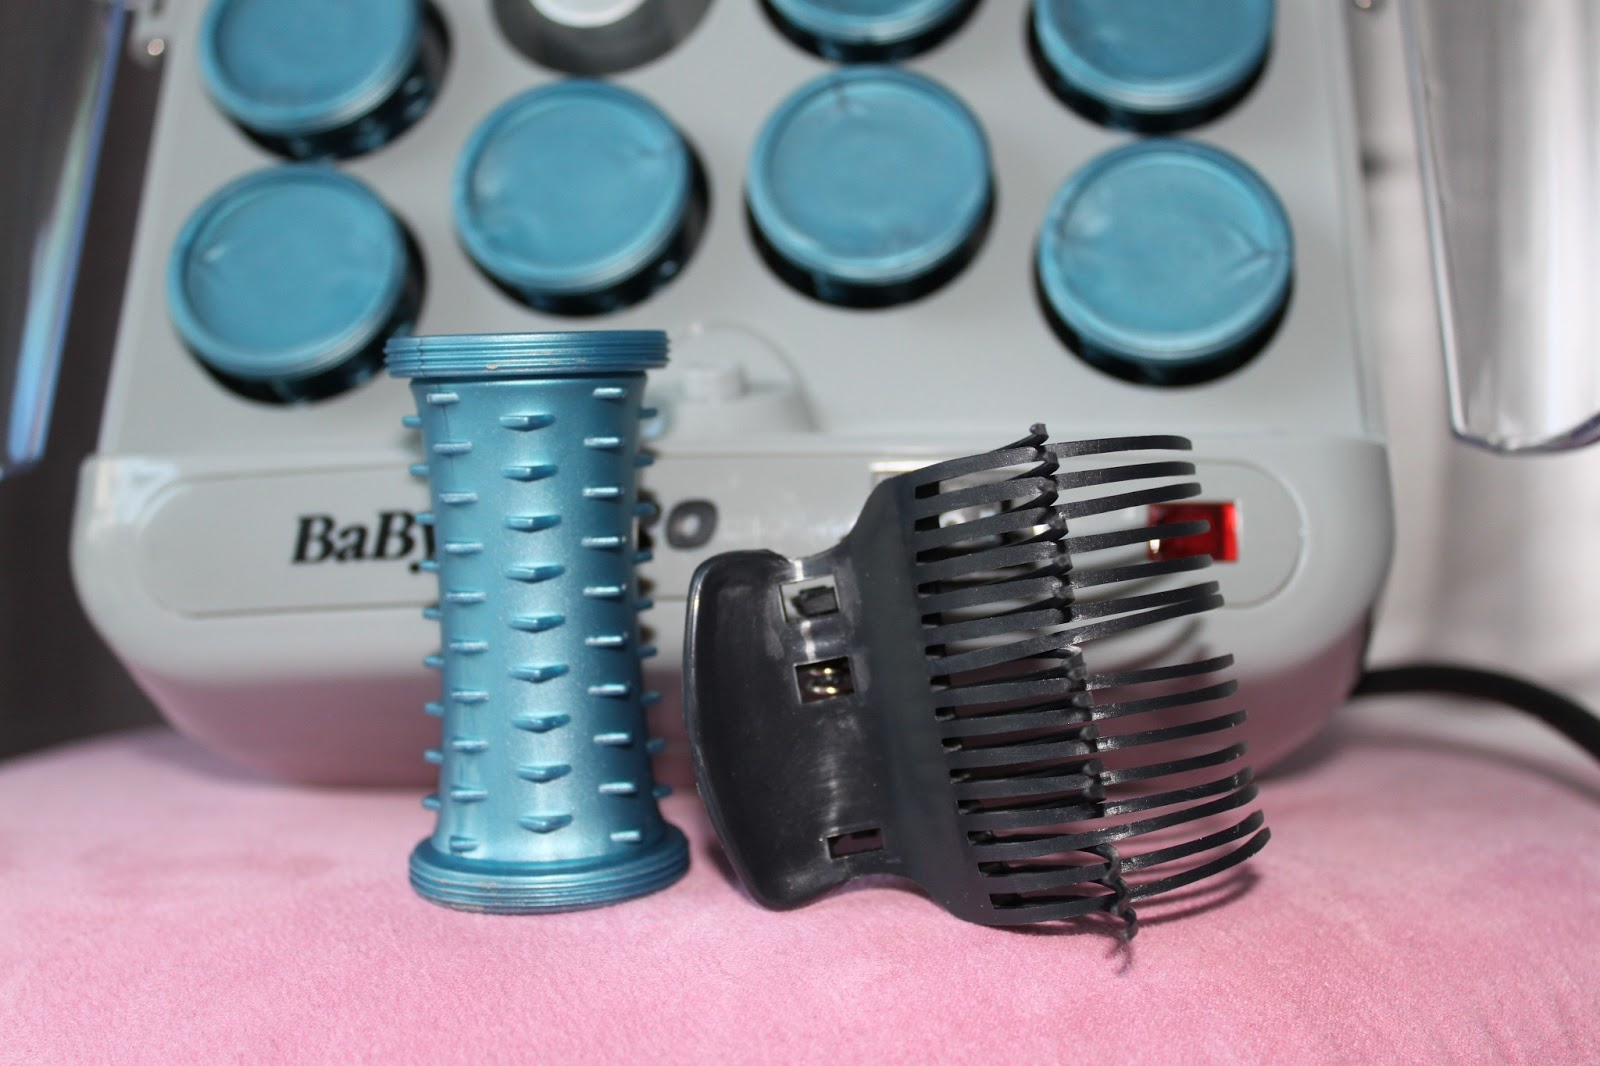 babyliss pro hot rollers instructions